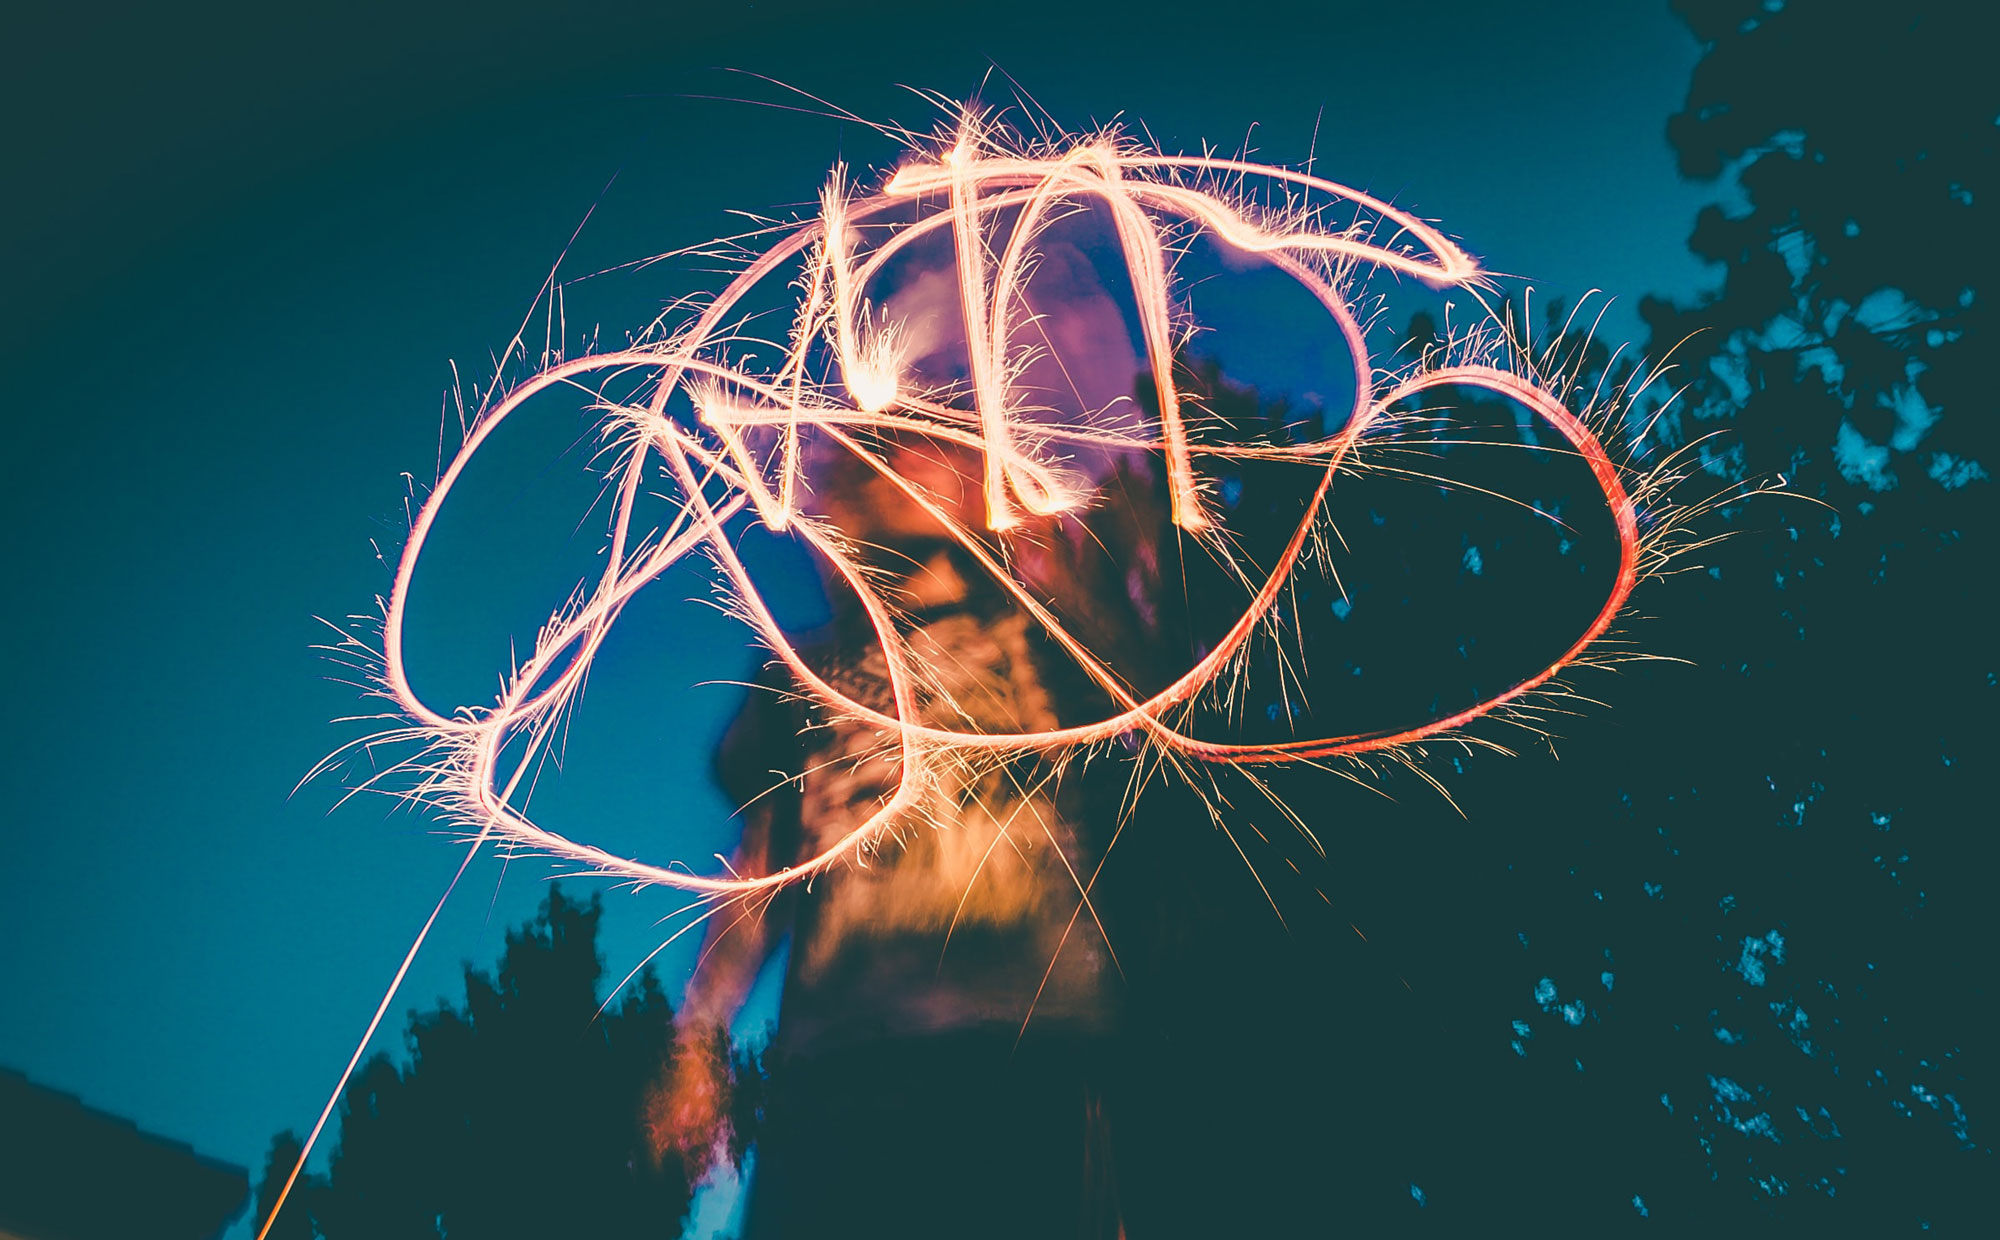 Light drawing with sparkler. Photo by Jakob Owens.